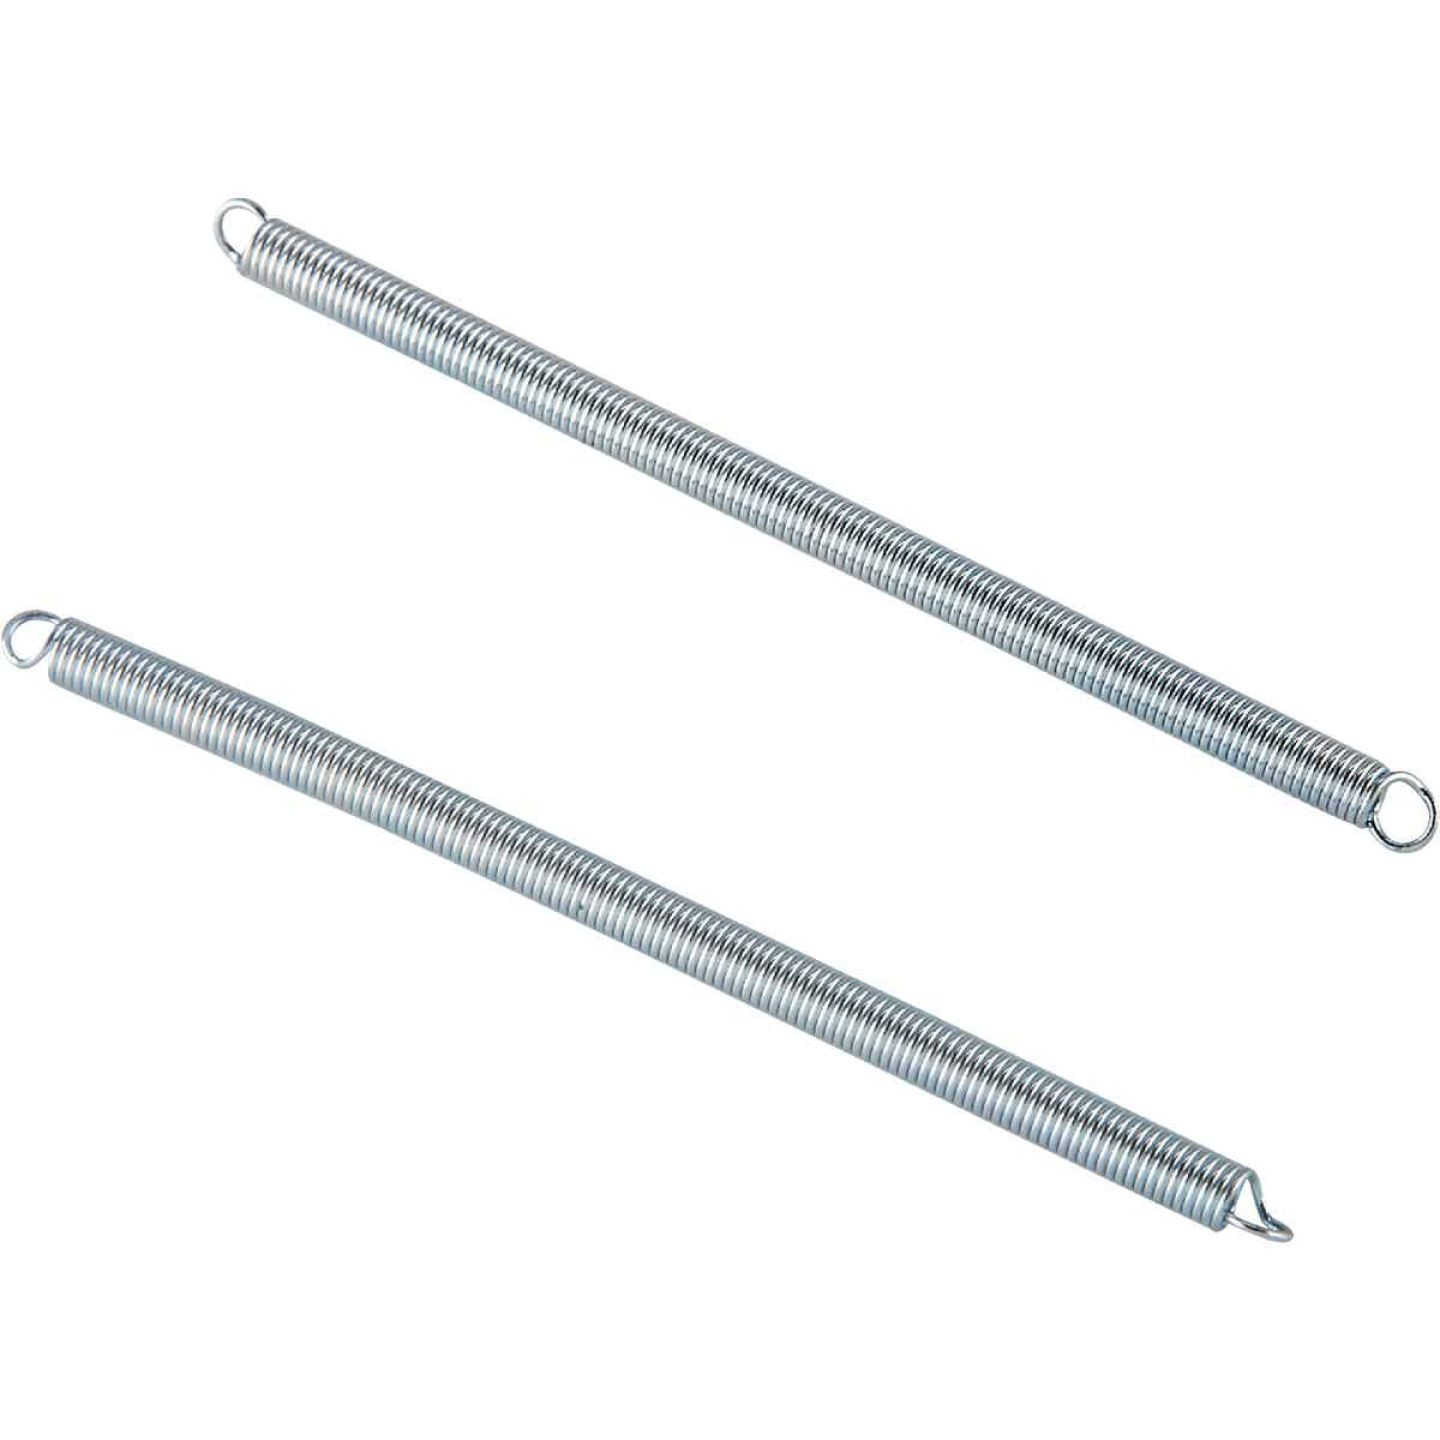 Century Spring 3 In. x 9/16 In. Extension Spring (2 Count) Image 1